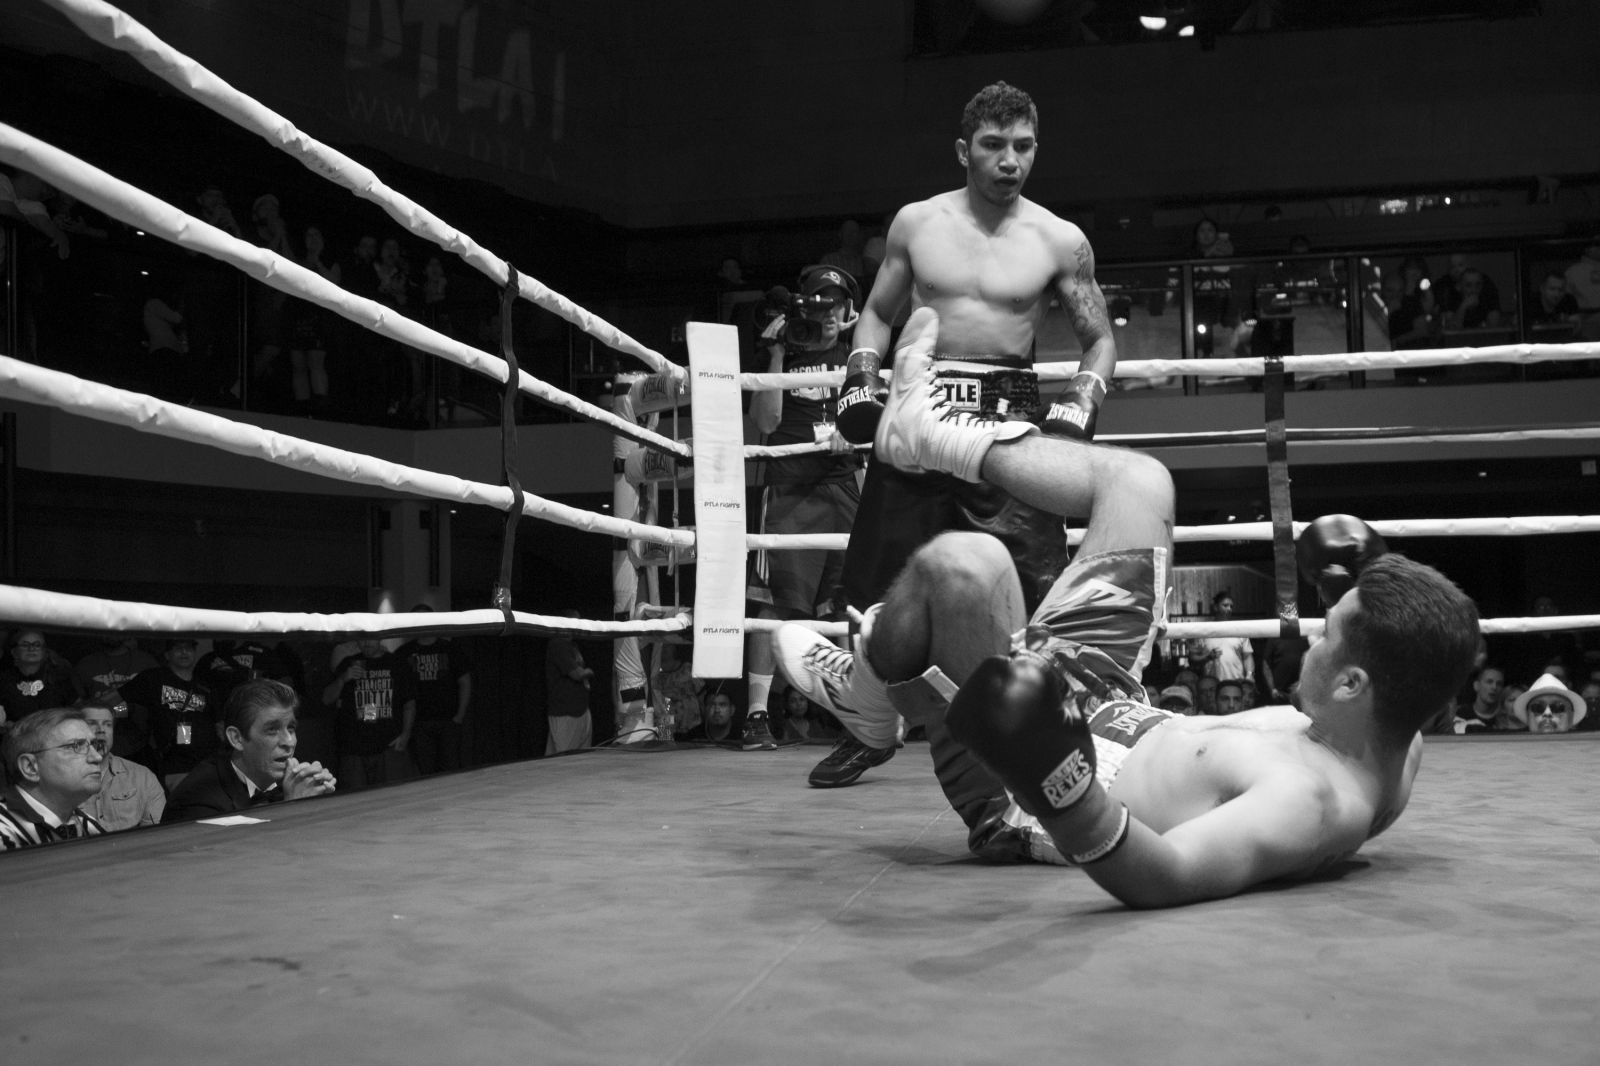 Art and Documentary Photography - Loading boxing-17.jpg